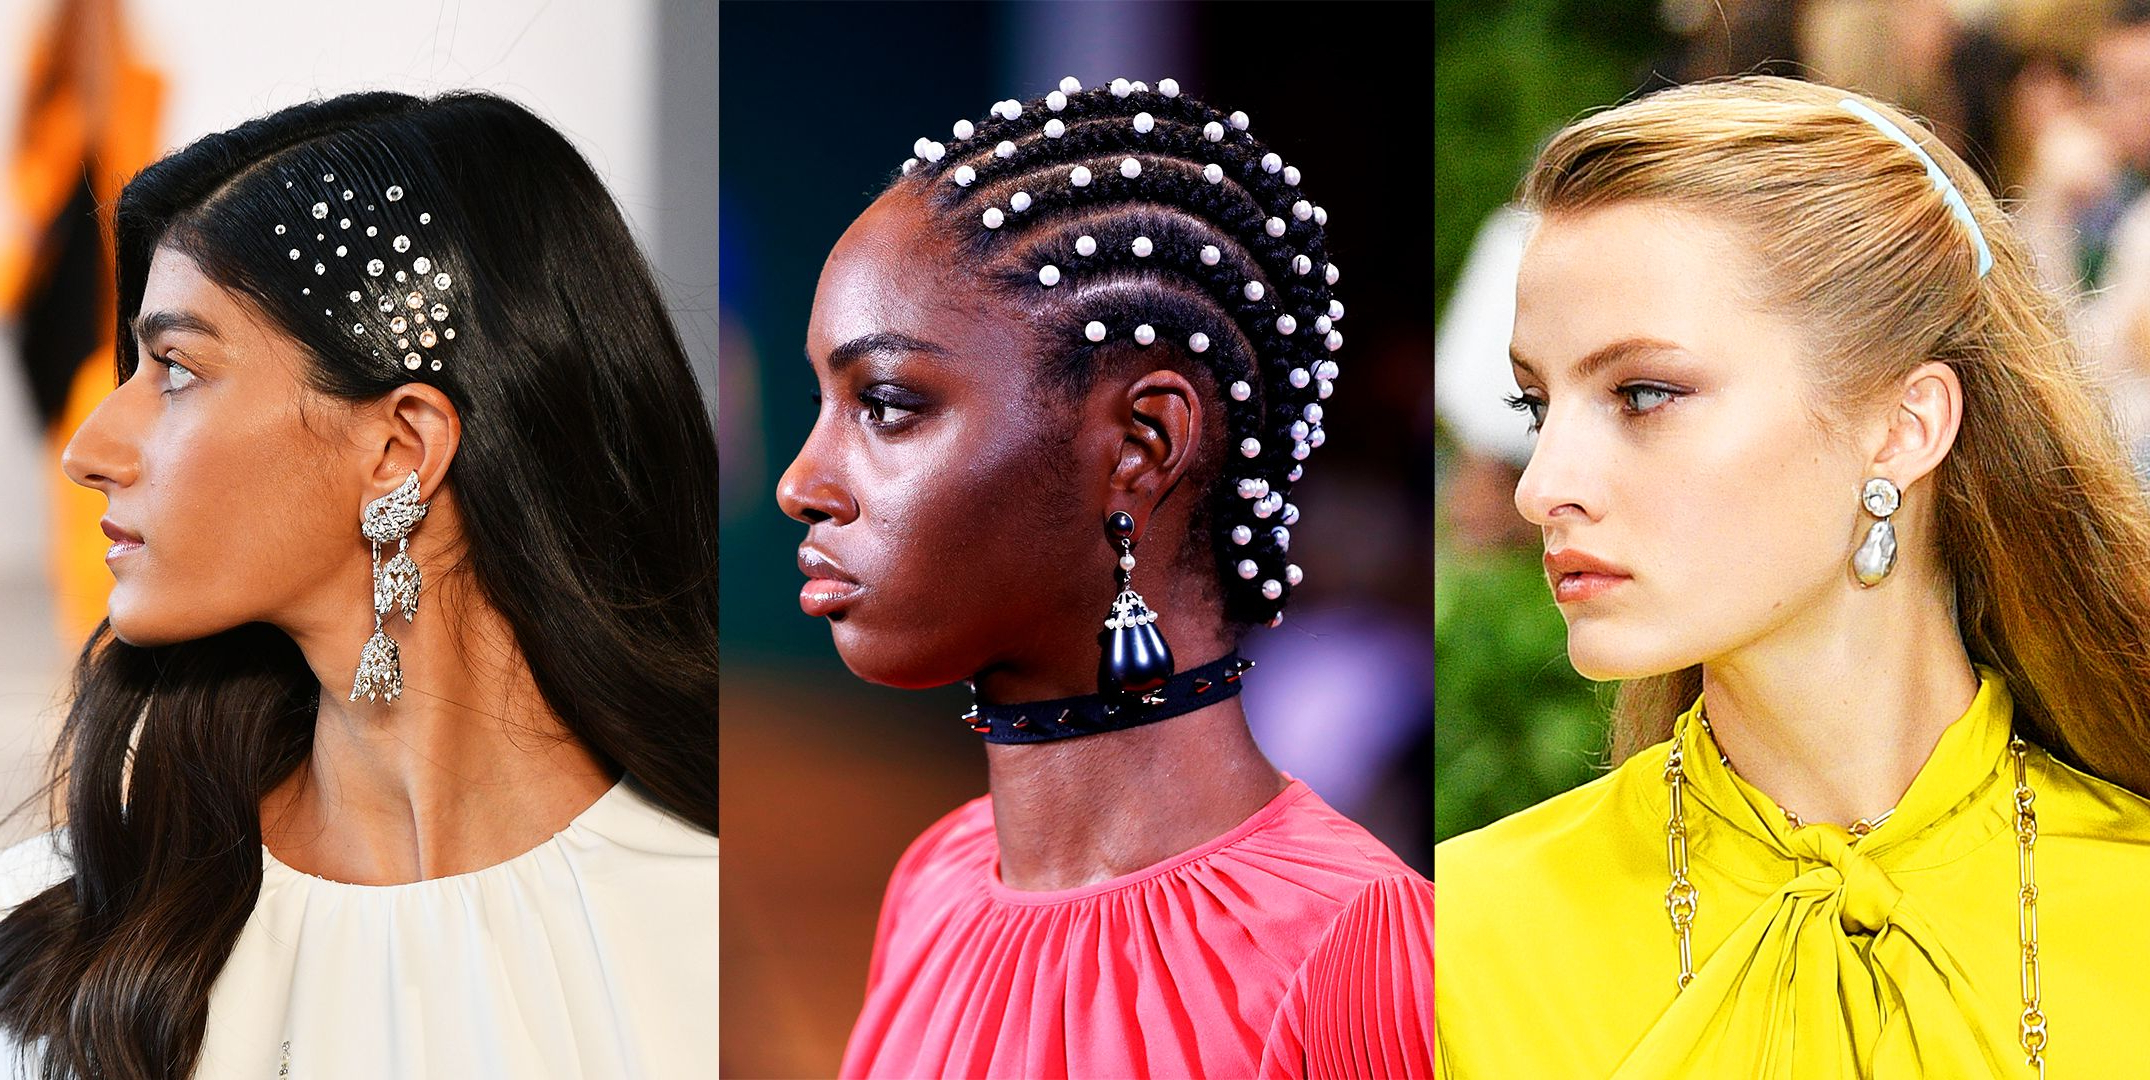 Preferred Crisp Pulled Back Braid Hairstyles Pertaining To Spring 2020 Hair Trends: 20 Prettiest Hairstyles And Ideas (Gallery 11 of 20)